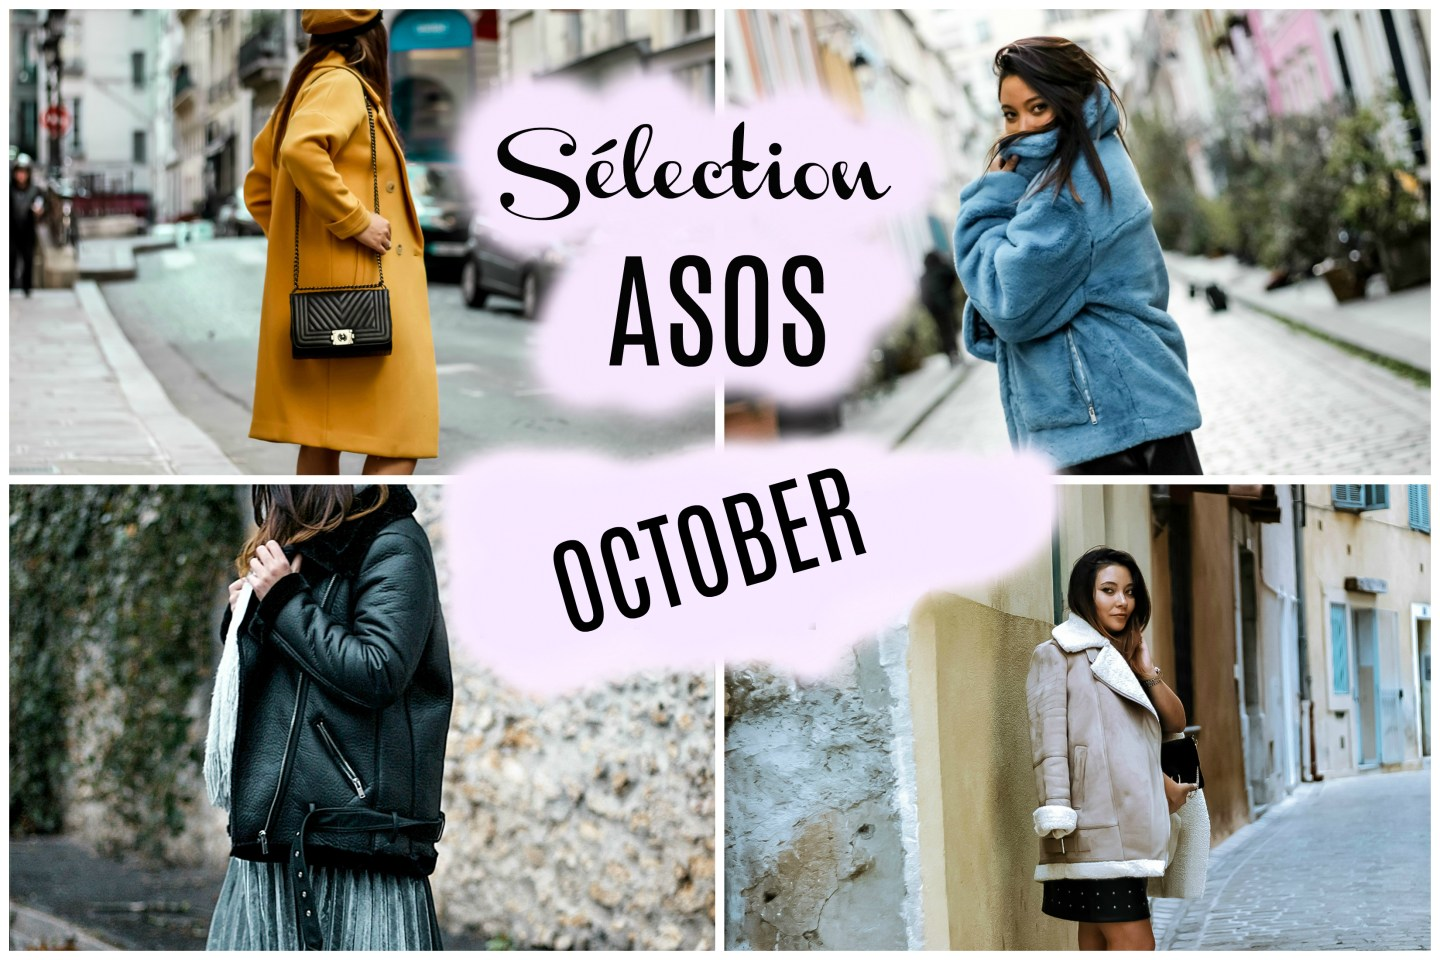 Sélection ASOS #October